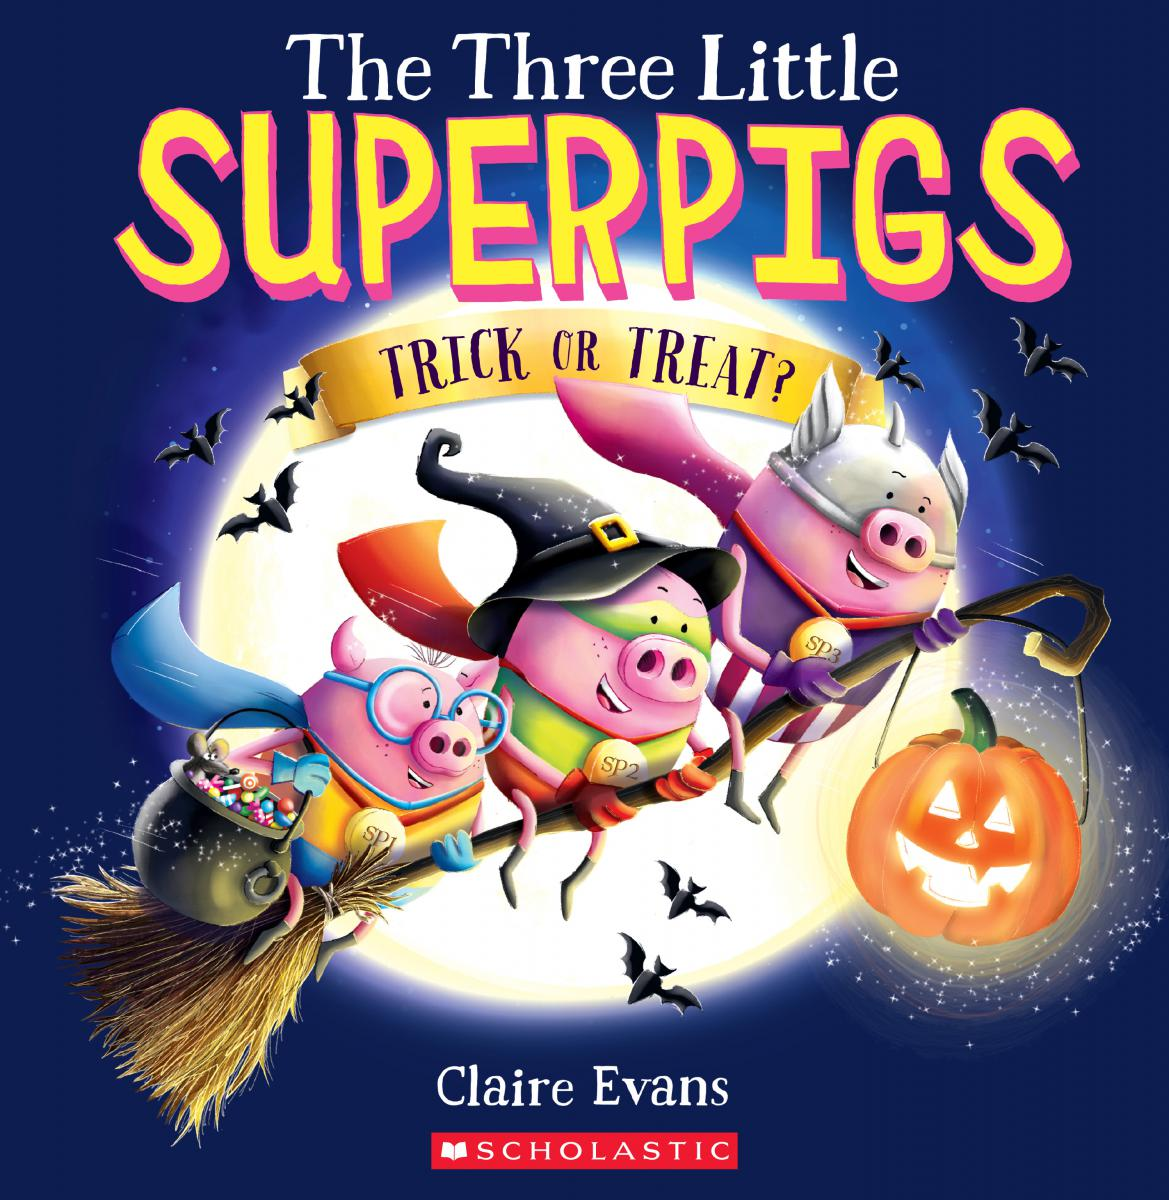 The Three Little Superpigs: Trick or Treat?